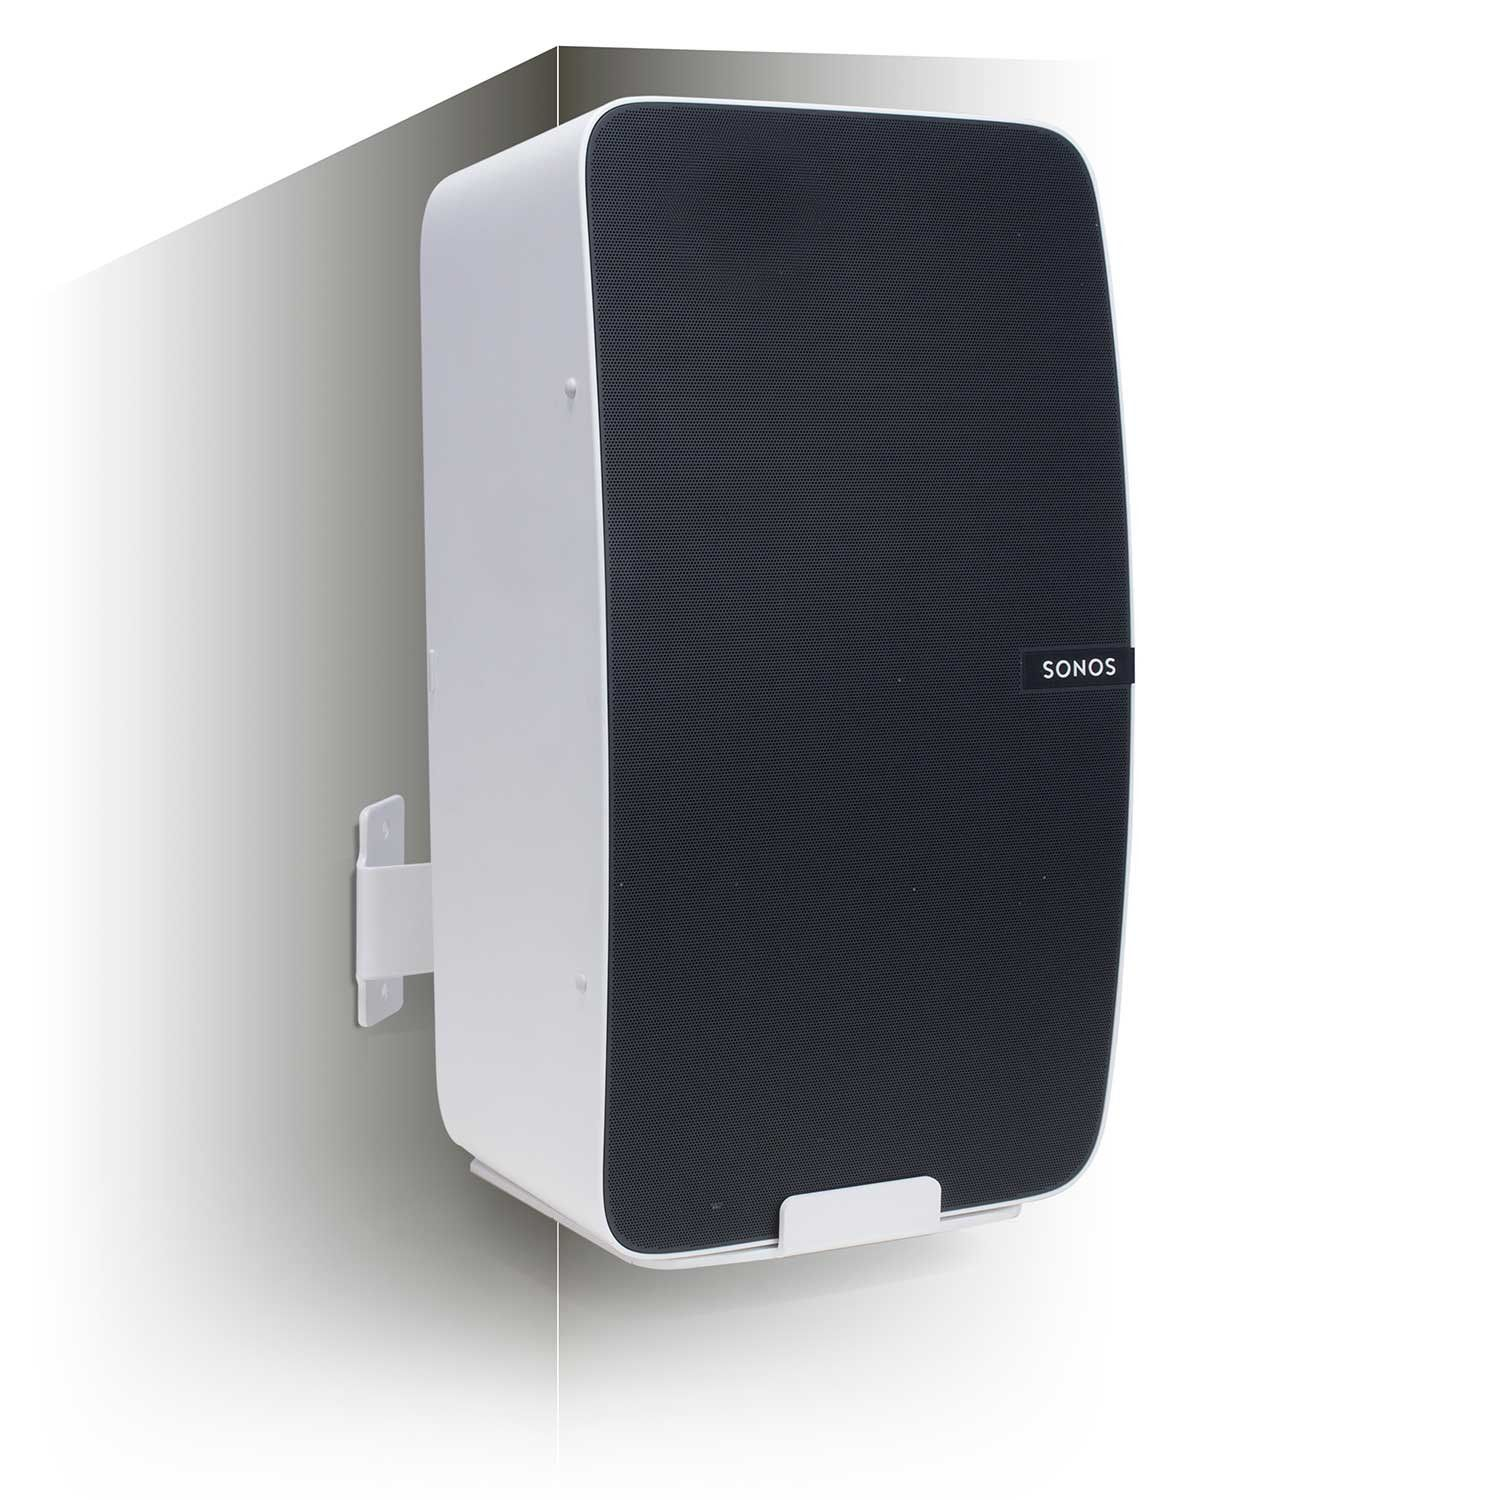 Vebos Corner Wall Mount Sonos Play 5 Gen 2 White Vertical En Optimal Sound Experience In Every Room Allows You To Hang Your Sono Corner Wall Sonos Mounting